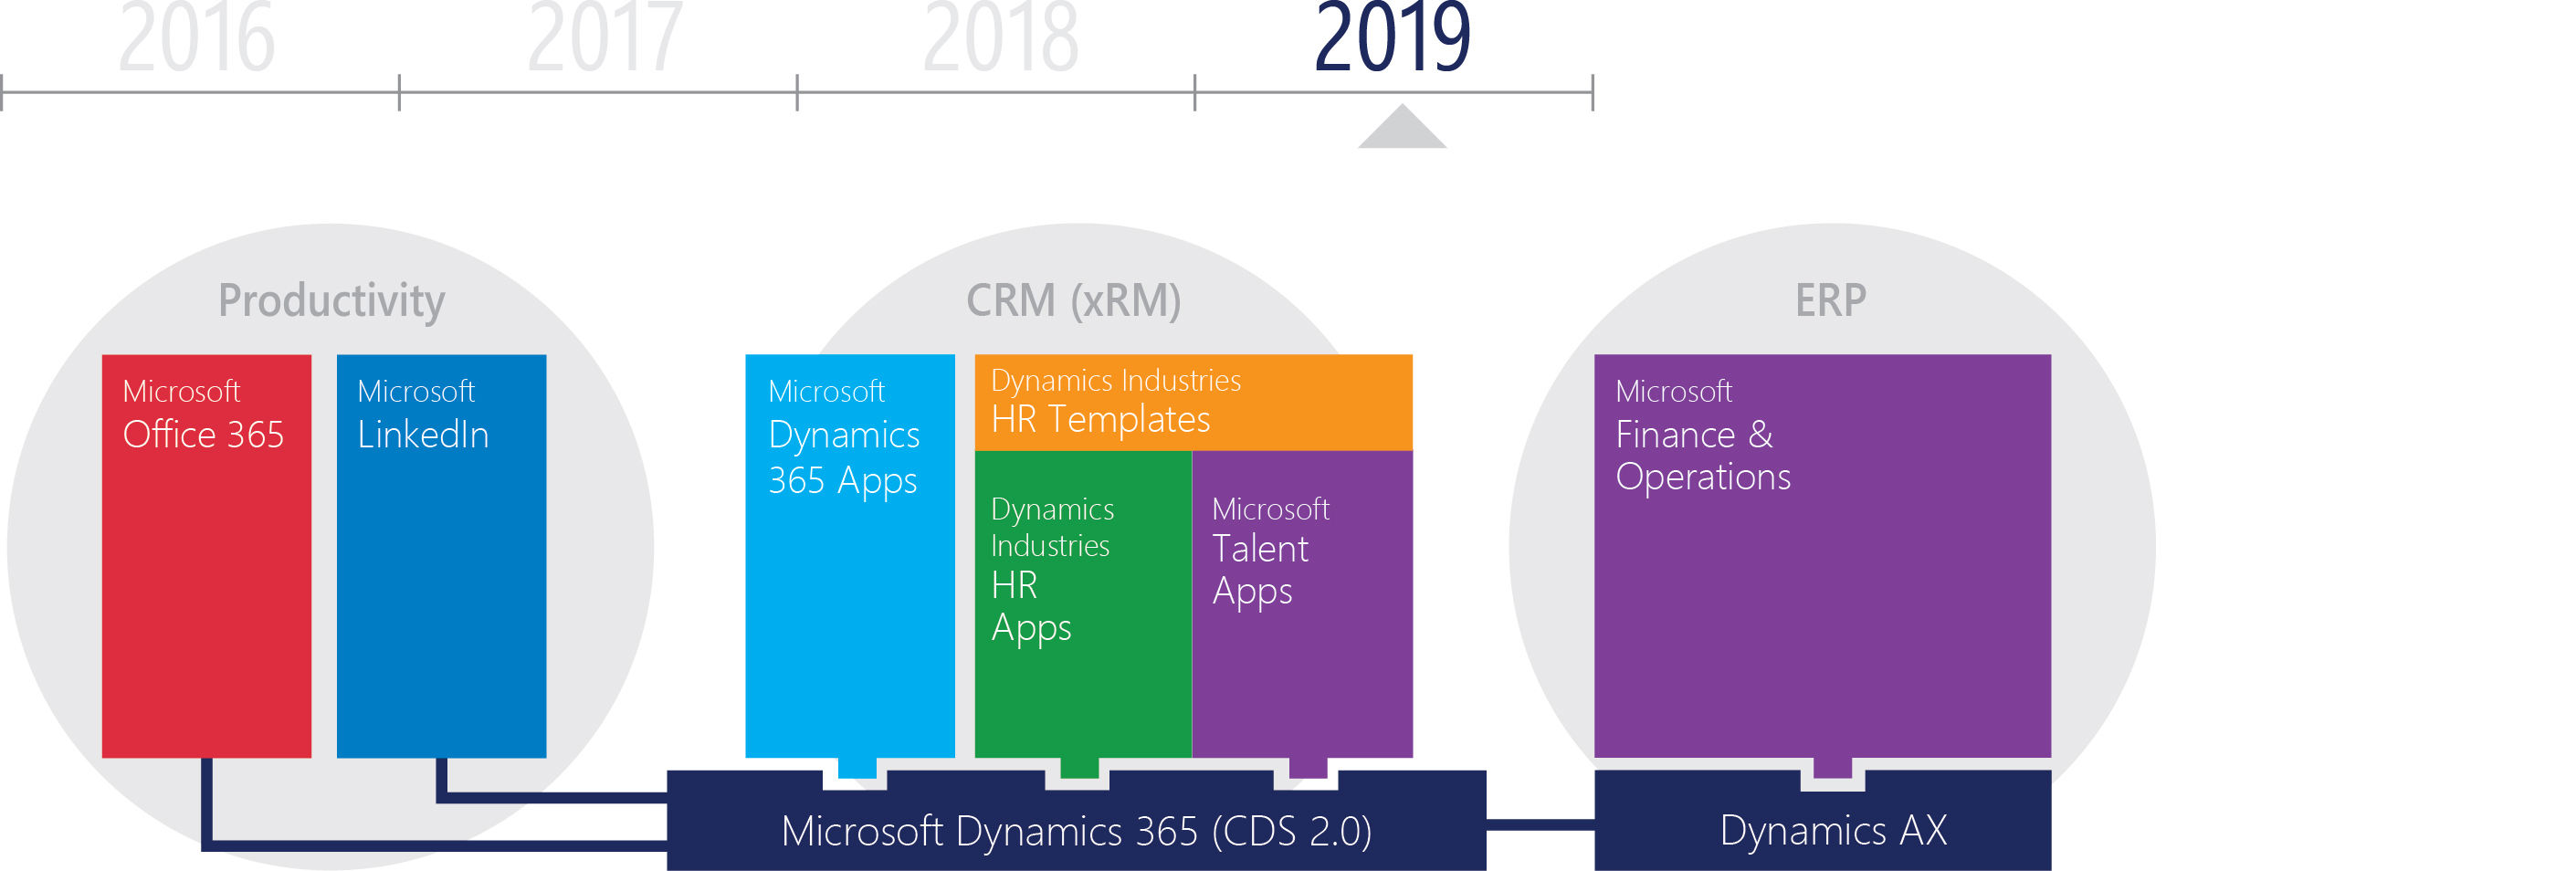 The platform for Microsoft HR is Microsoft Dynamics 365